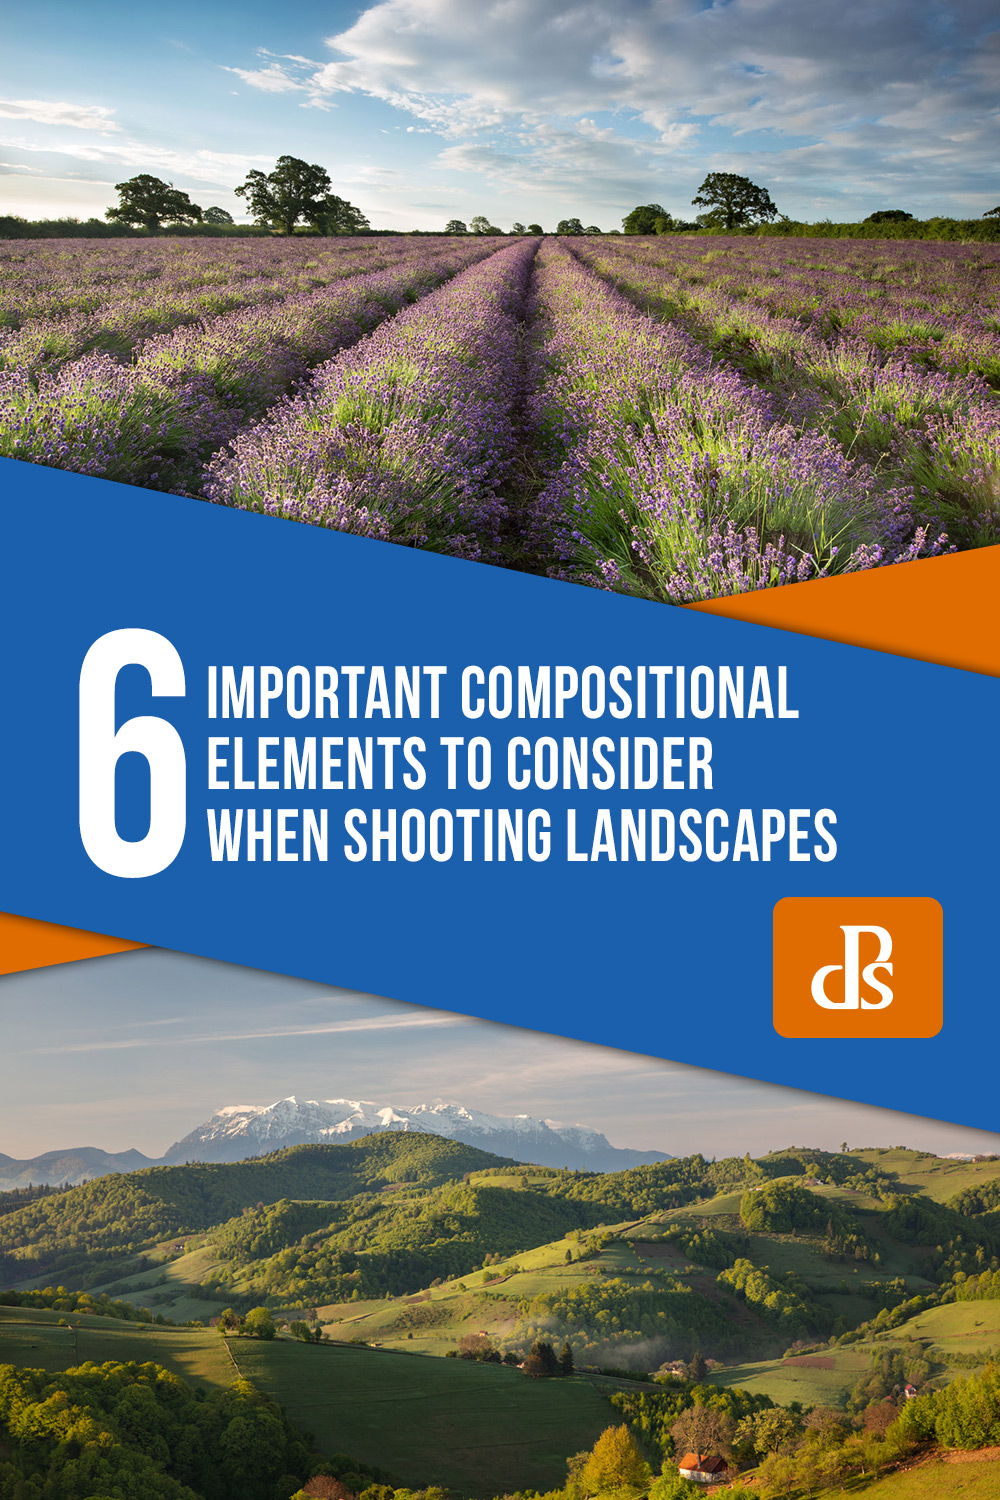 6 Important Compositional Elements to Consider When Shooting Landscapes